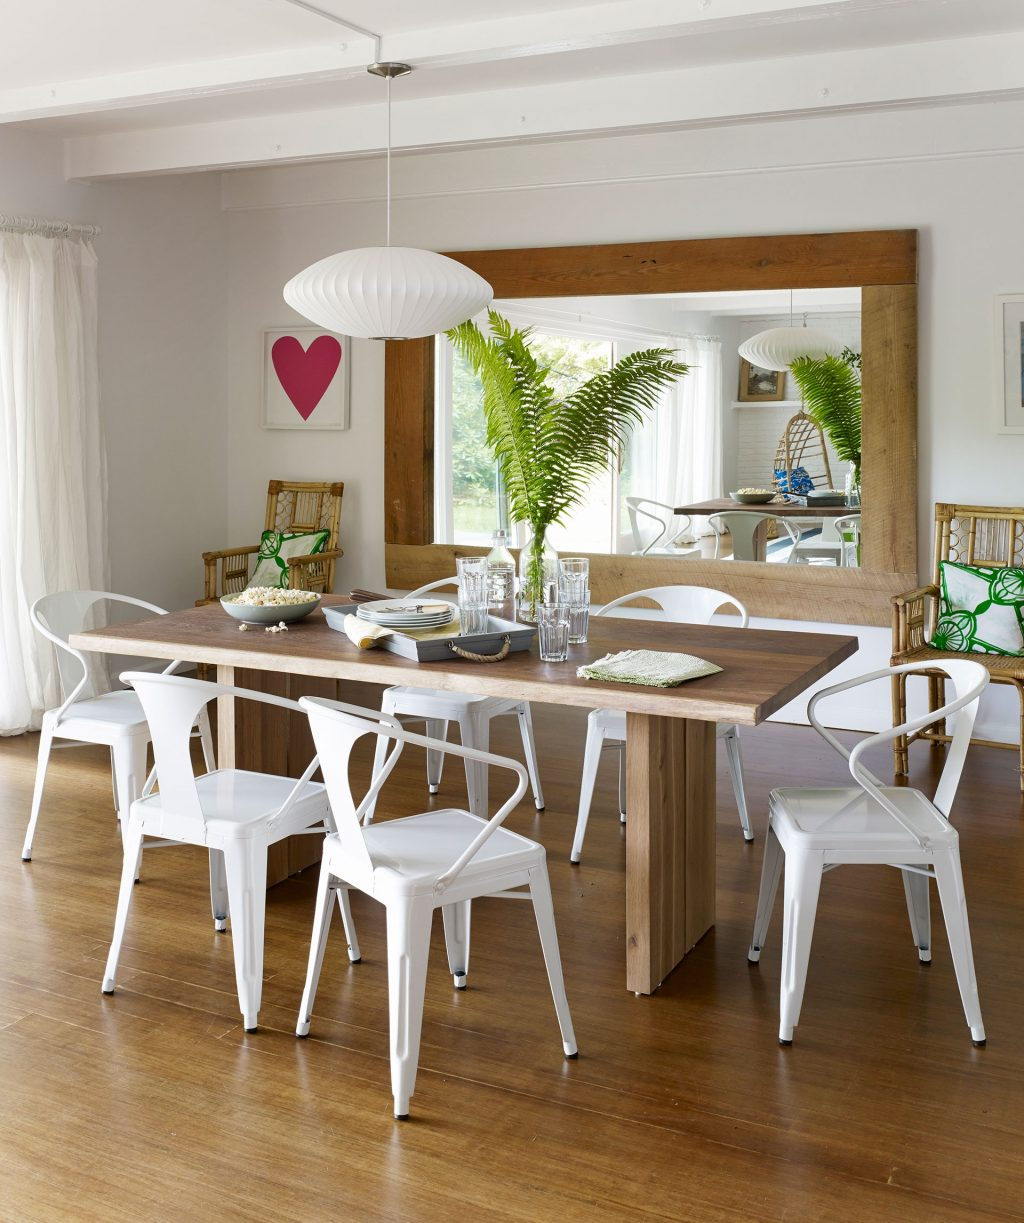 Charming Contemporary Dining Table Decor 24 Modern Room Wall Ideas